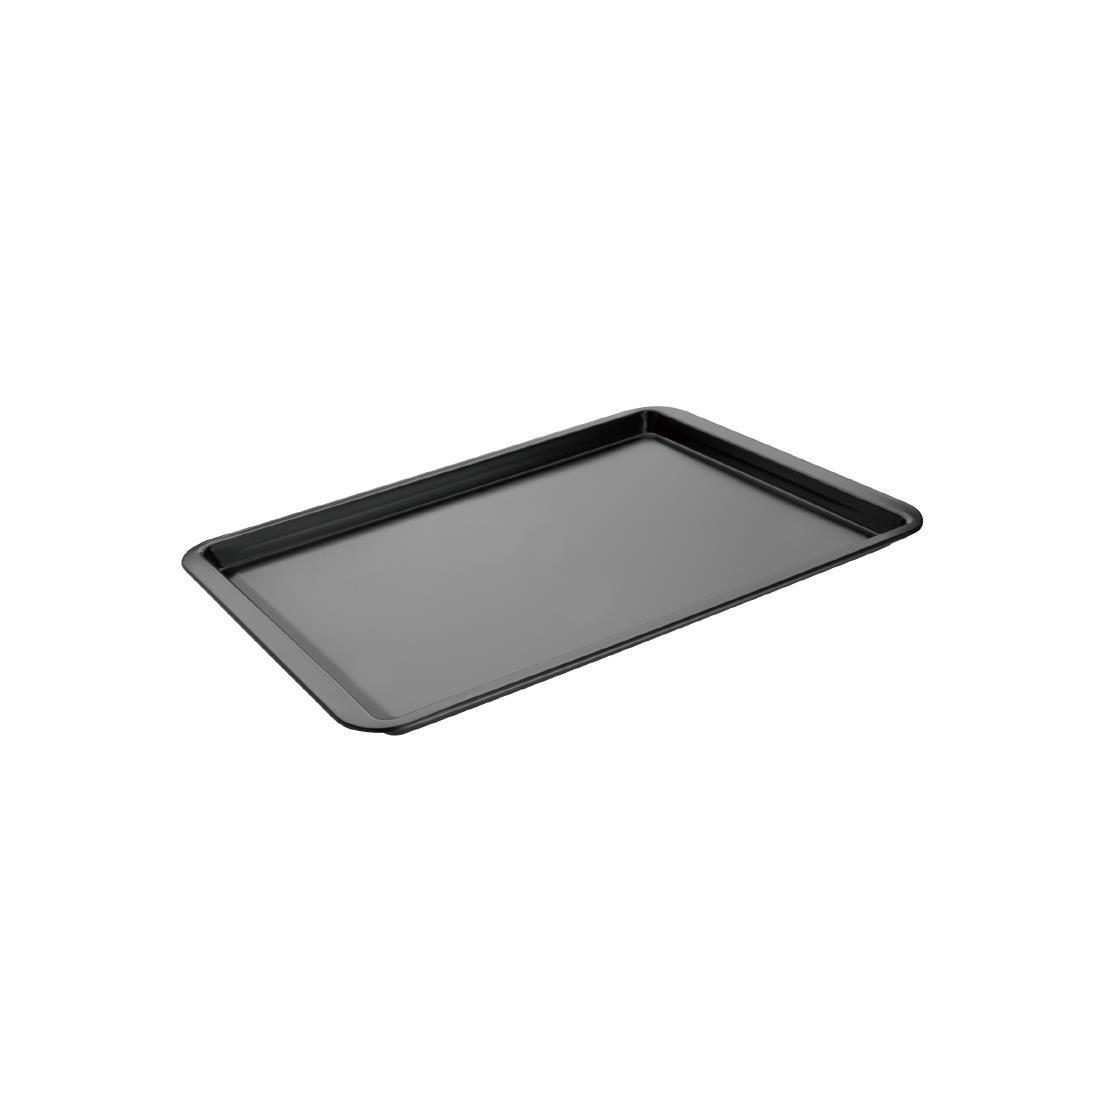 Vogue Non-Stick Carbon Steel Baking Tray 370 x 257mm - Each - GD014